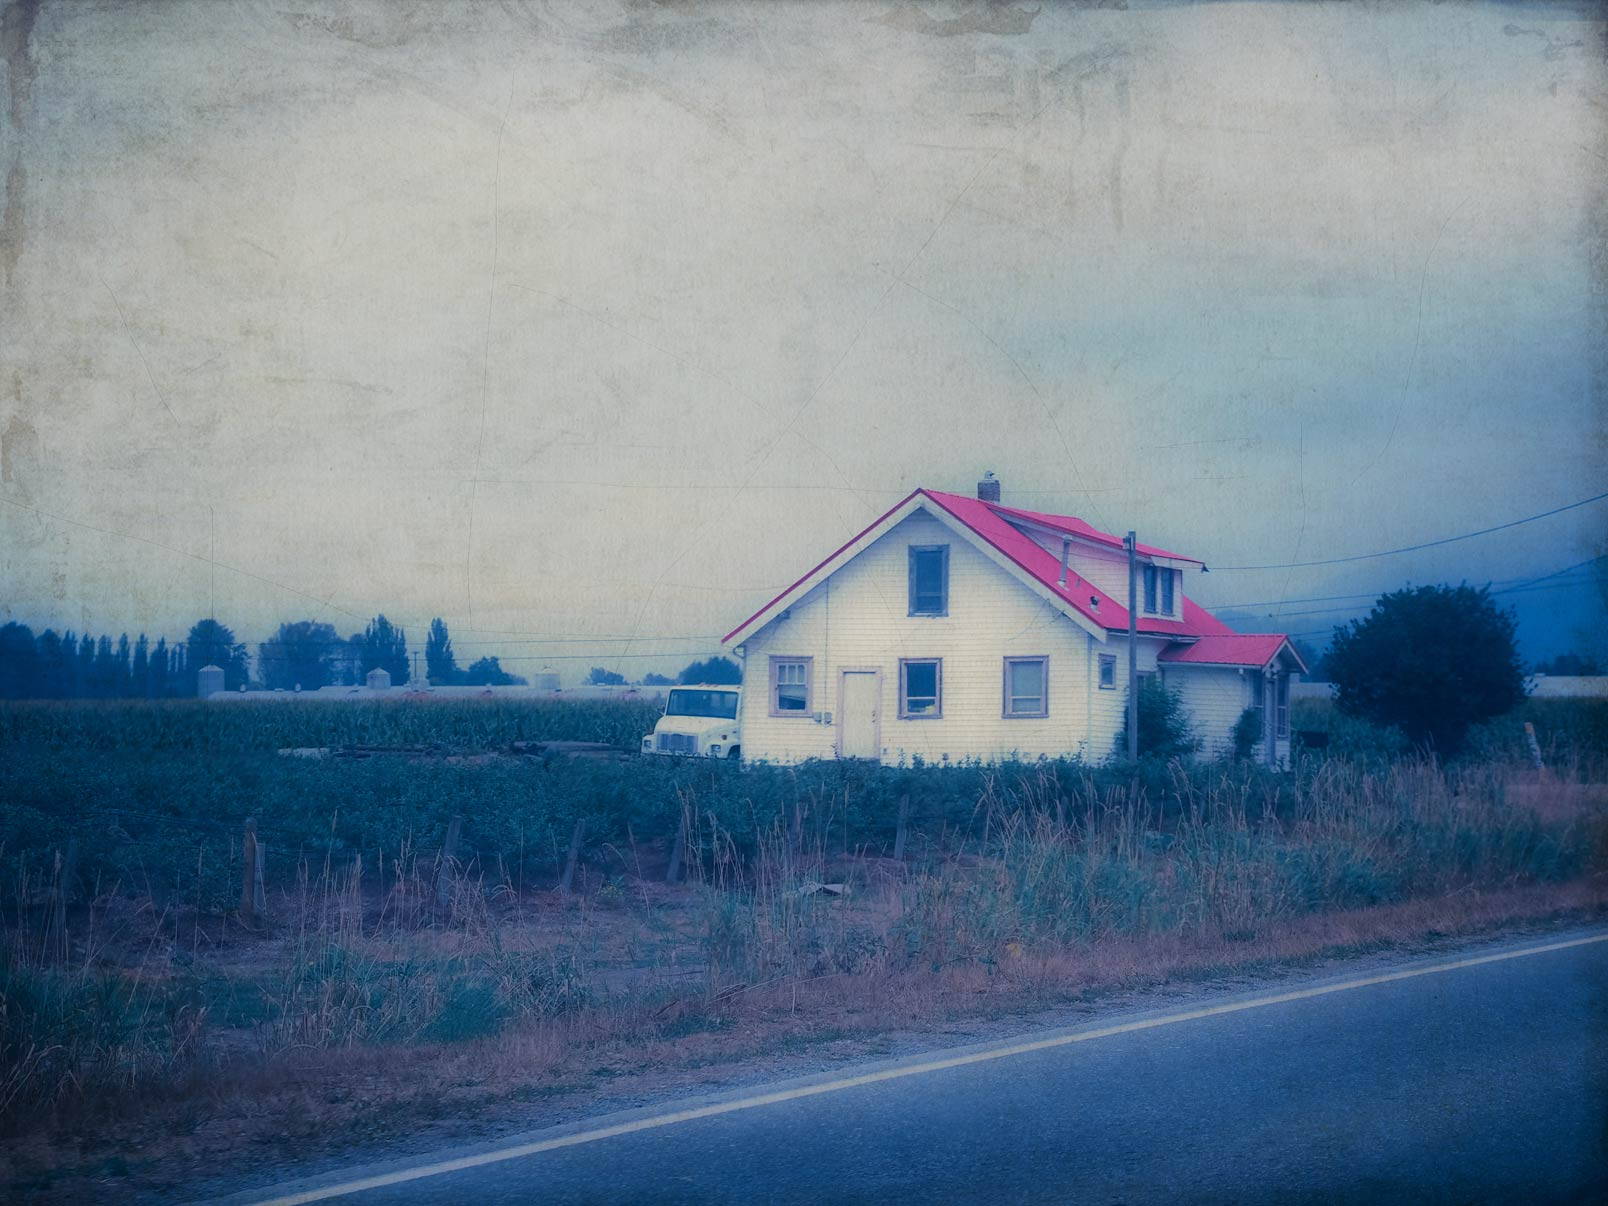 There is a house…